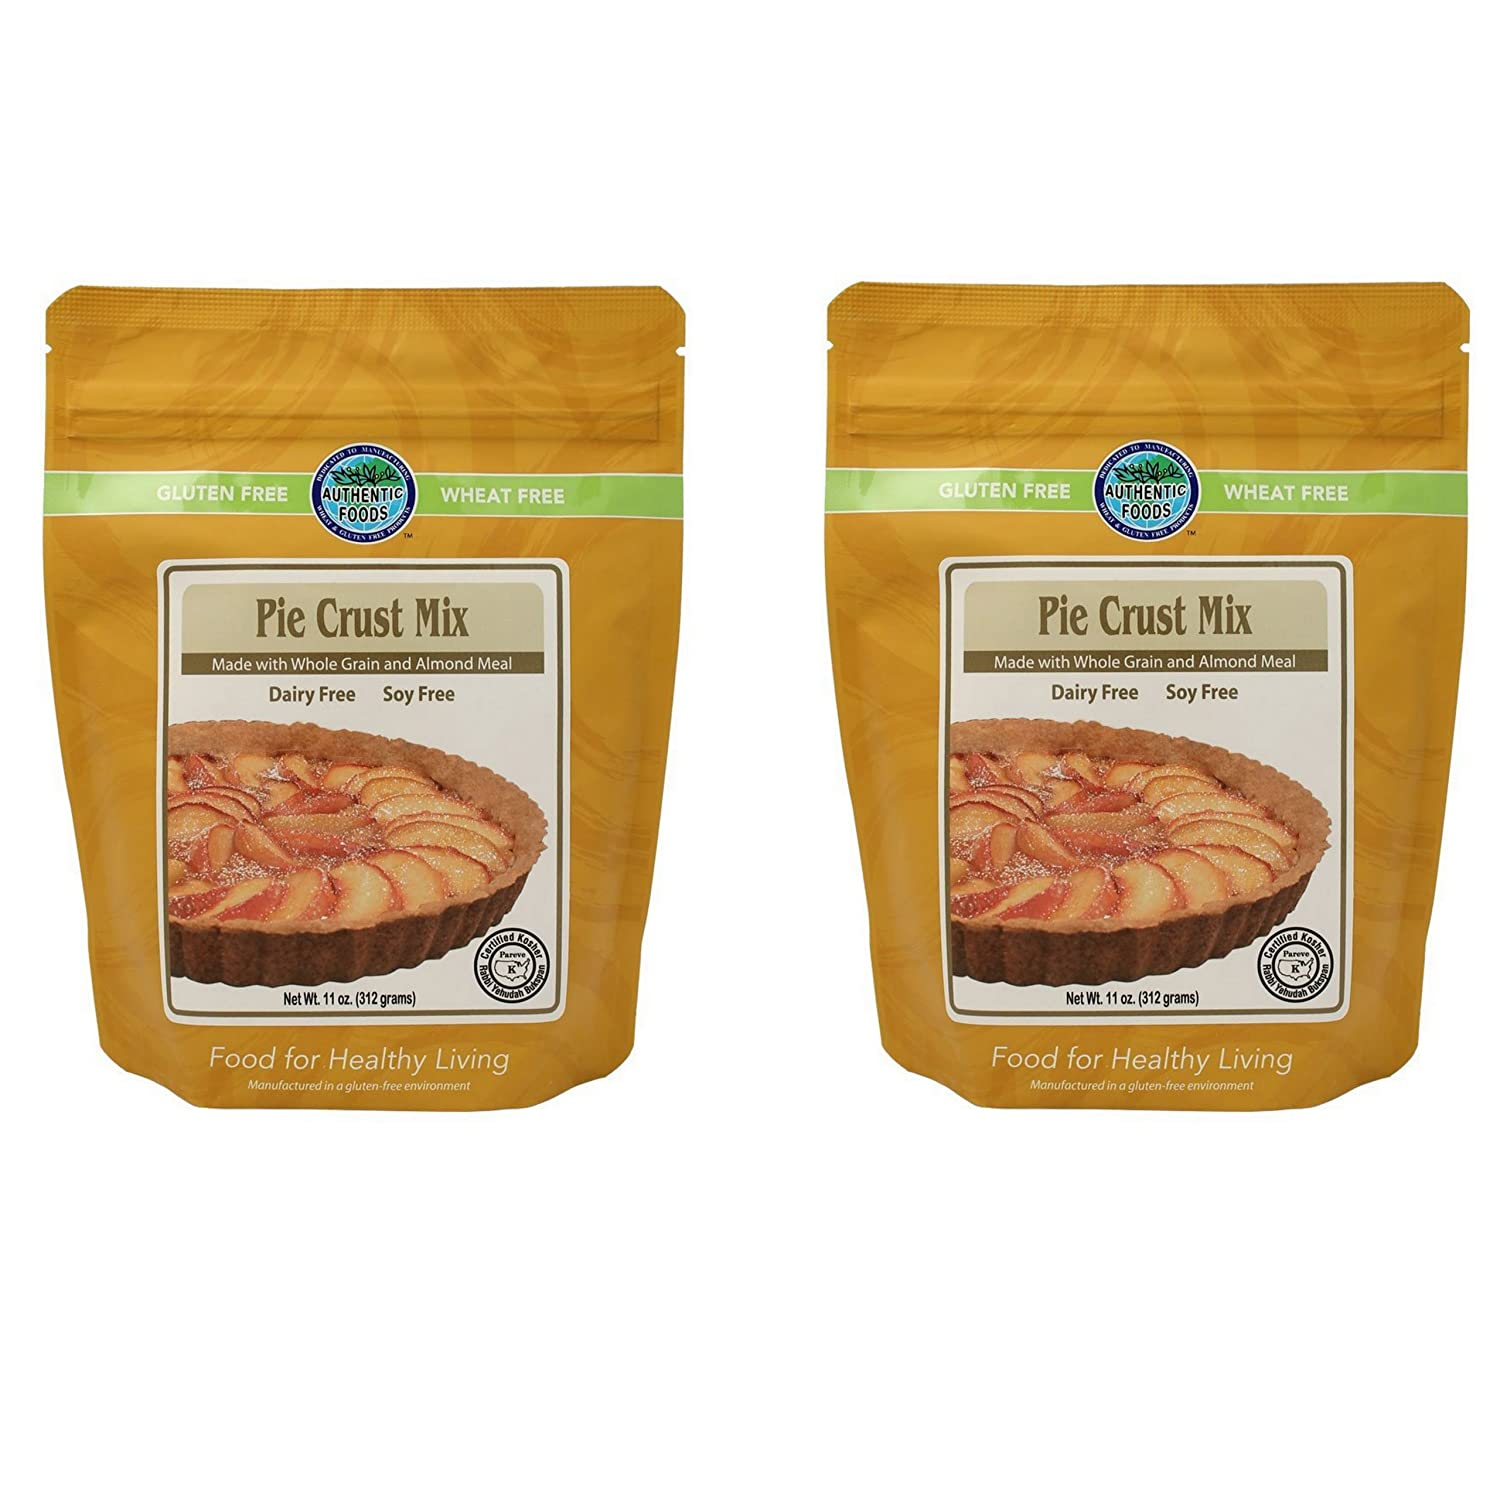 Authentic Foods Pie Crust Mix- Pack Max 43% OFF Virginia Beach Mall 2